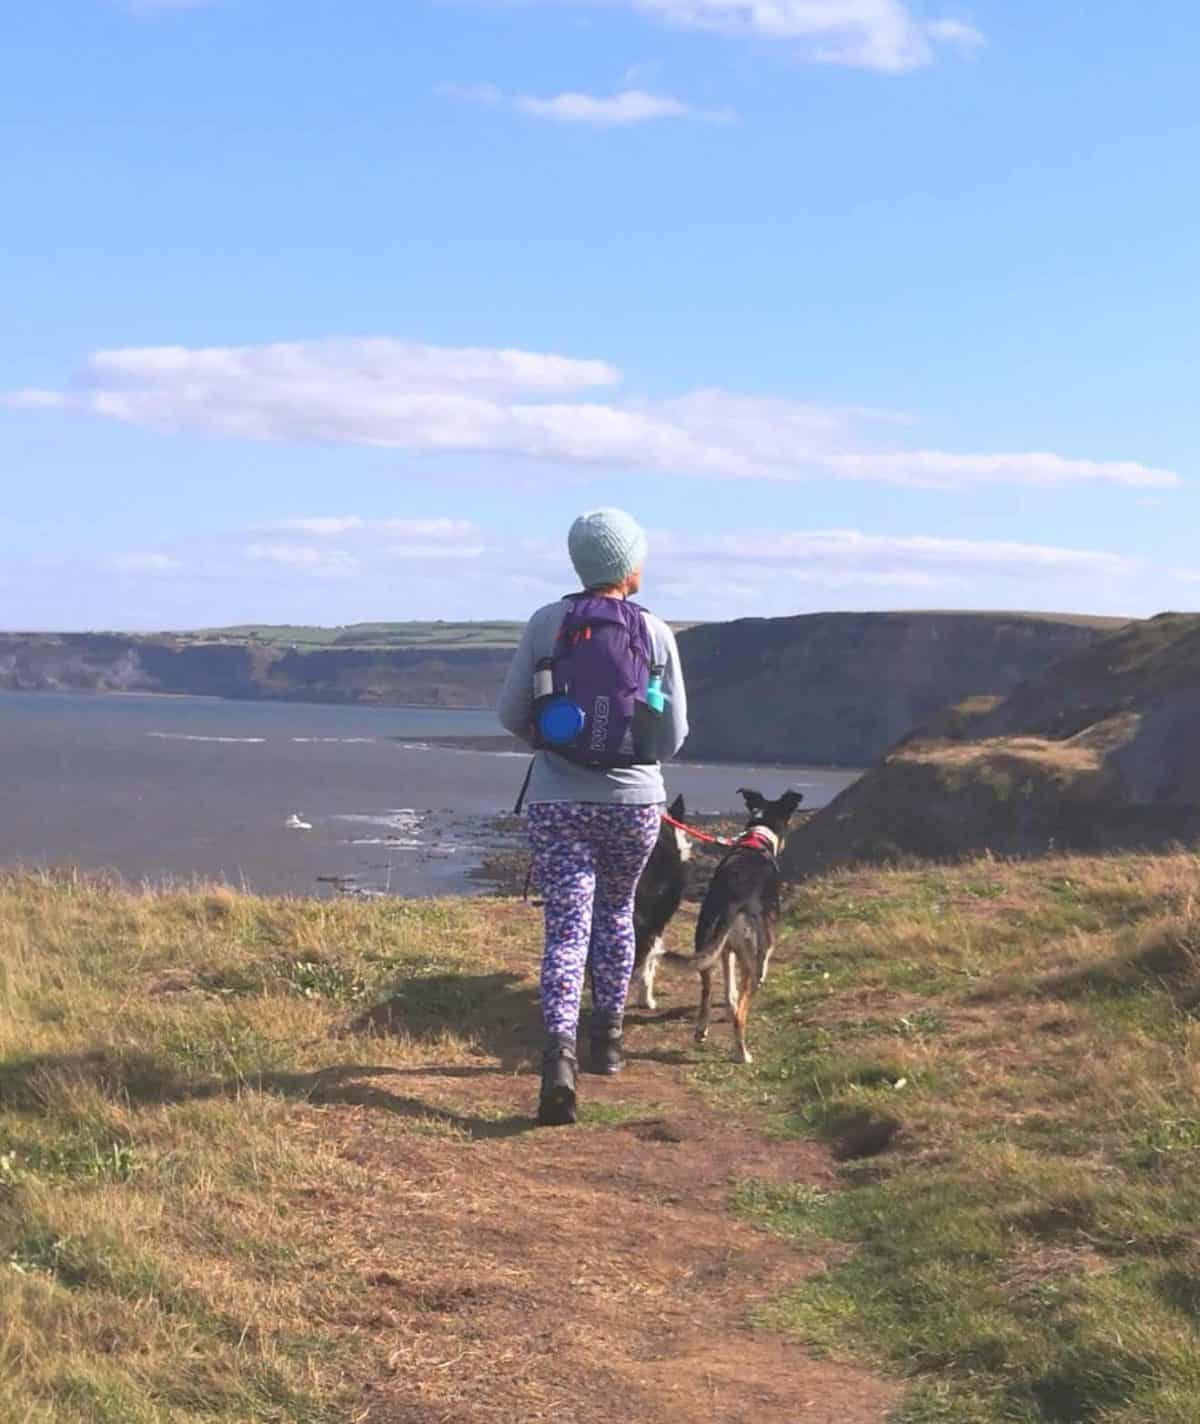 A photo of Anna from Feed Your Passion walking with her dogs